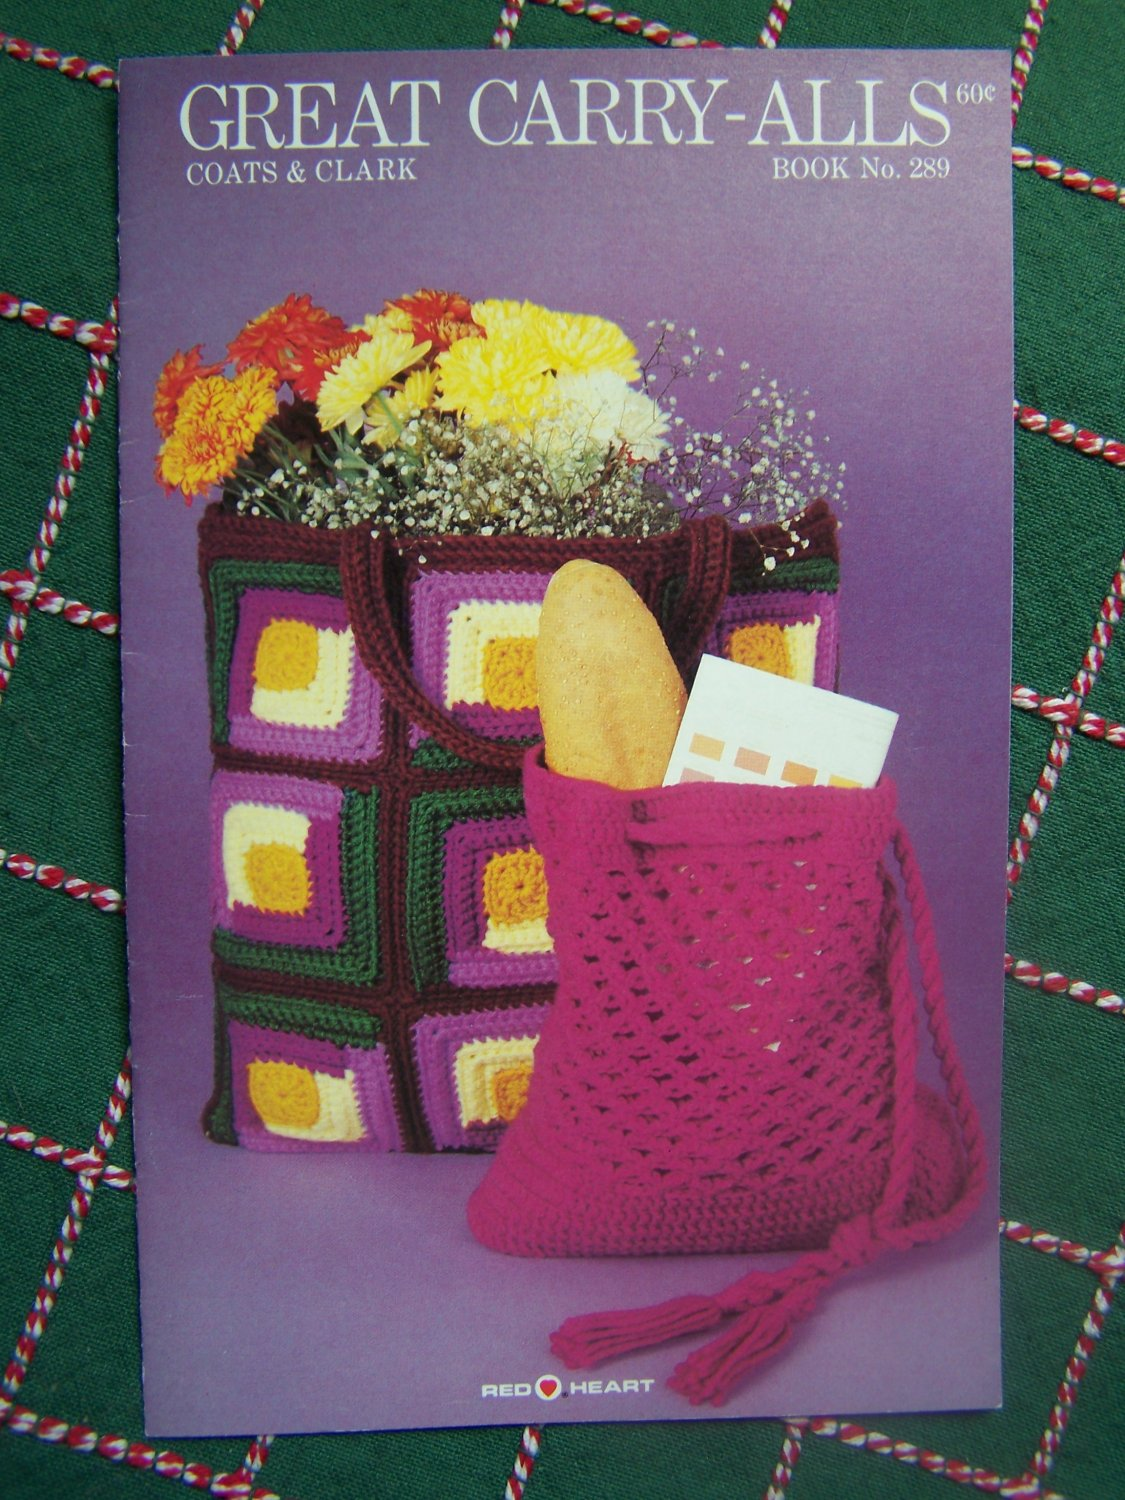 Vintage Tote Bag Crochet Knitting Patterns Shoulder Purse Clutch Drawstring Shopping Duffle